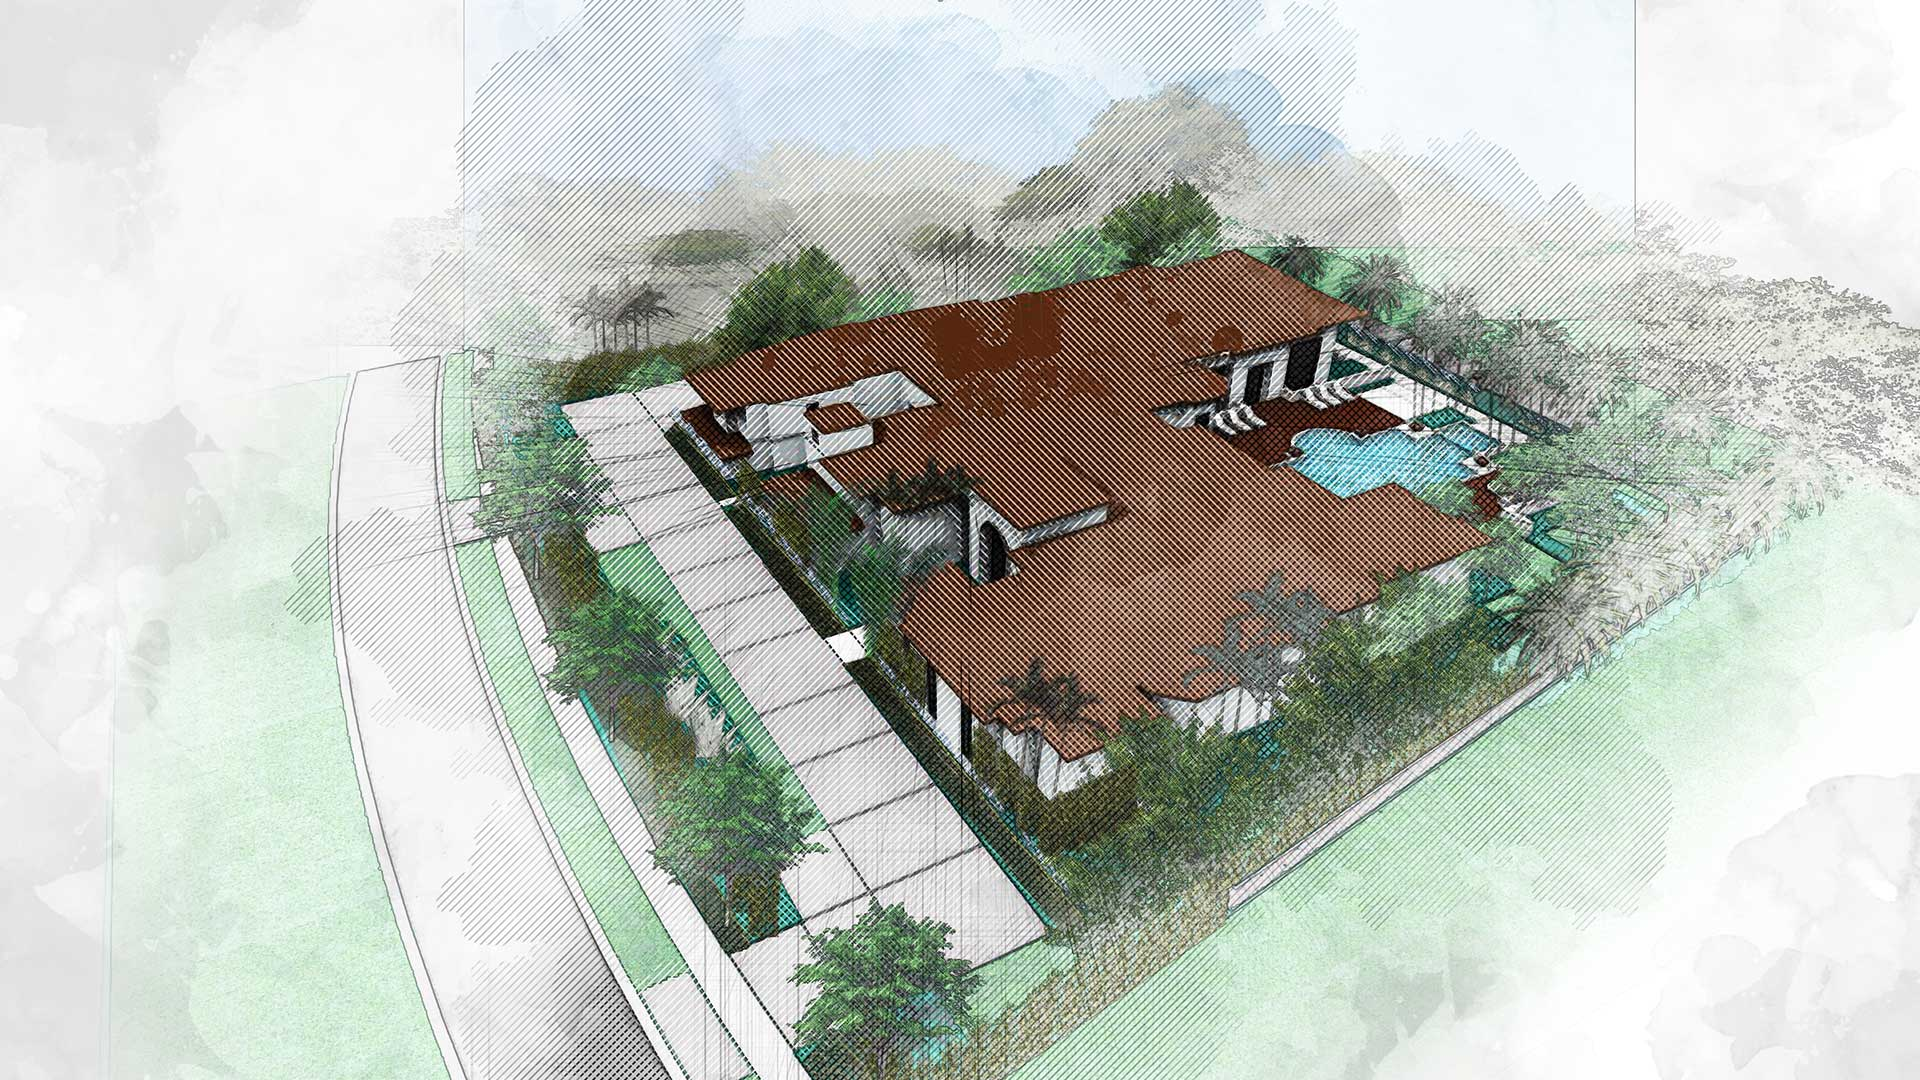 sketching of landscape design showing the aerial view of a house and its landscape